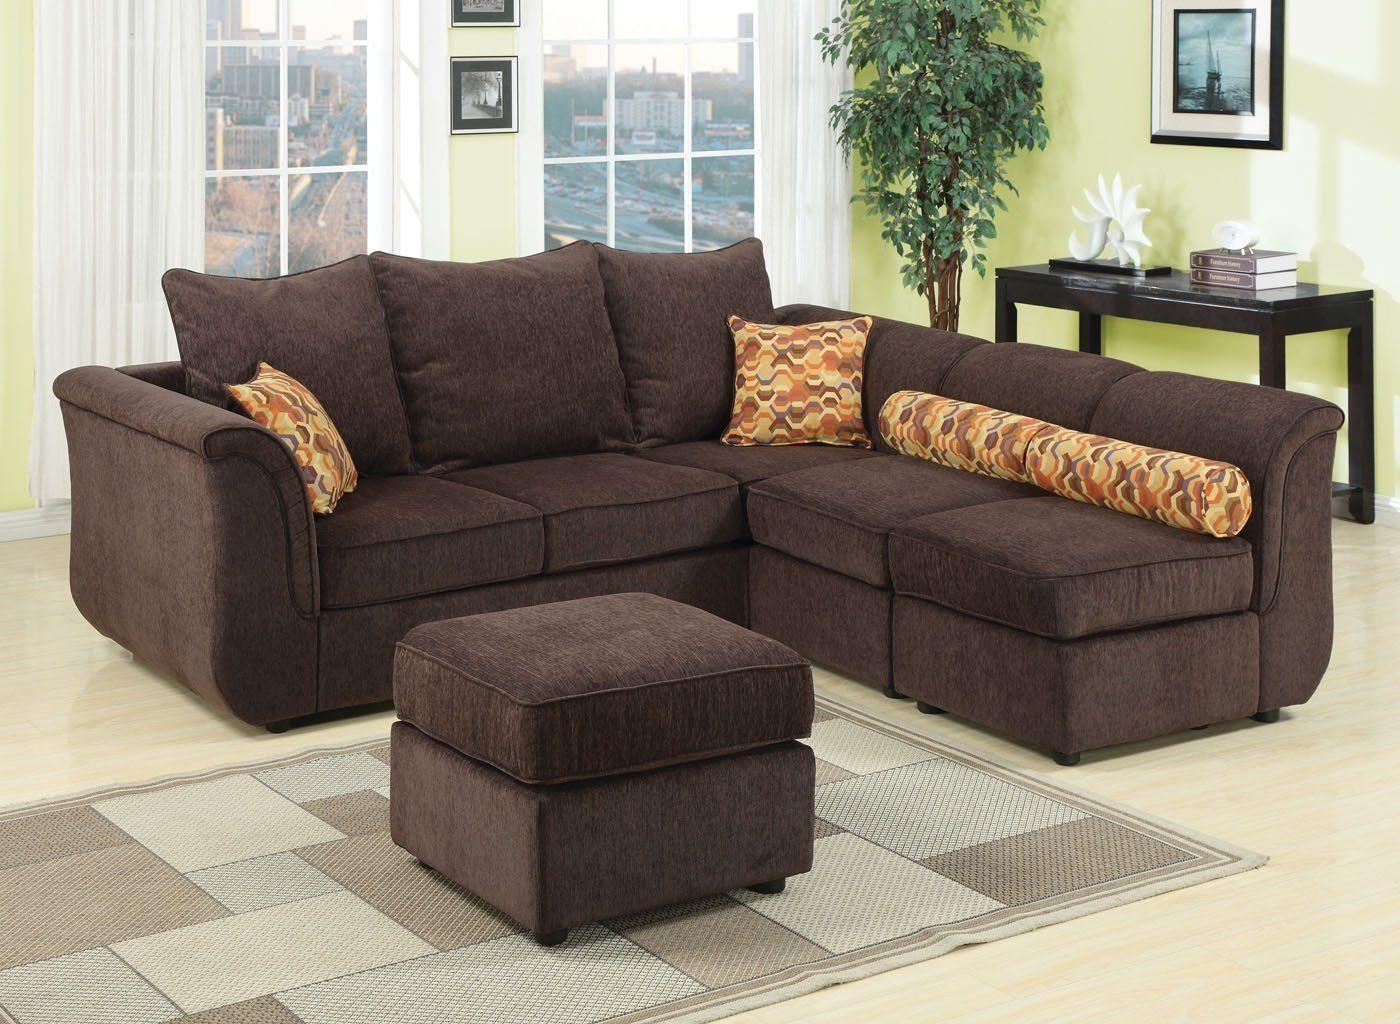 Chenille Sectional Sofa Sectional Couch On Sale Leather Sofa Love Inside Leather And Chenille Sectional (Image 2 of 20)